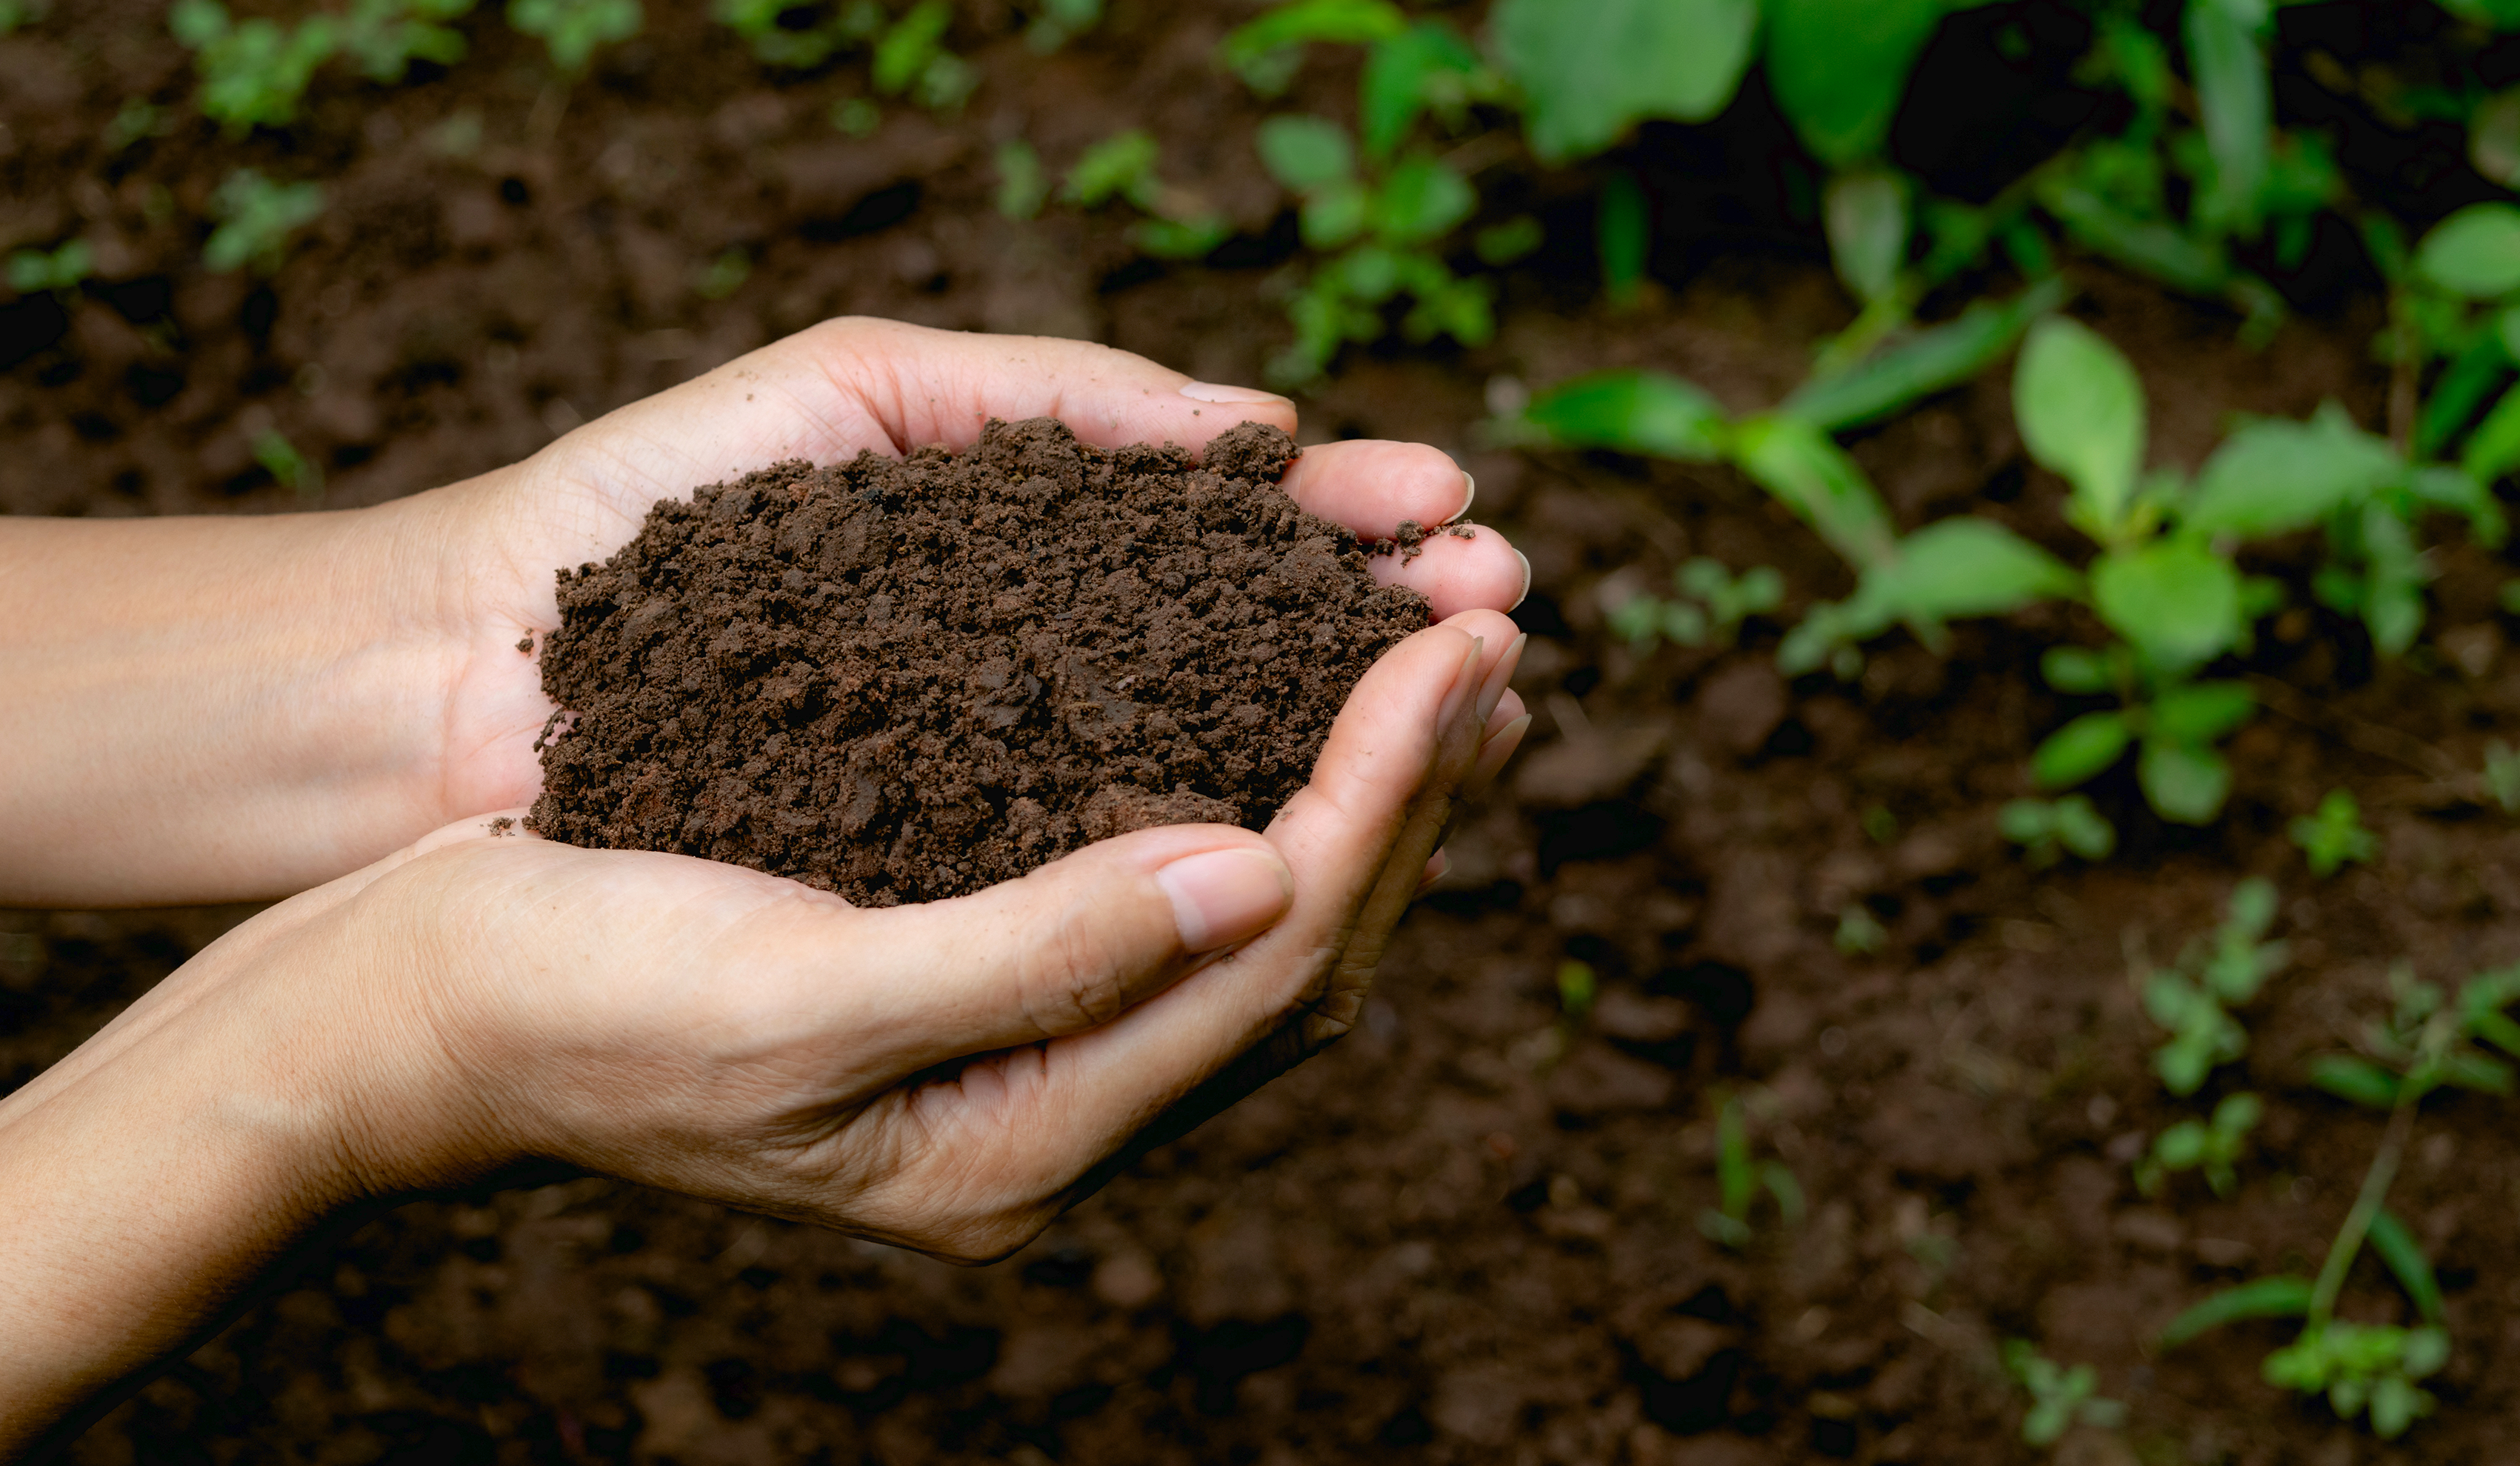 SAPs eventually incorporate into the organic, humic portion of soil after multiple decades